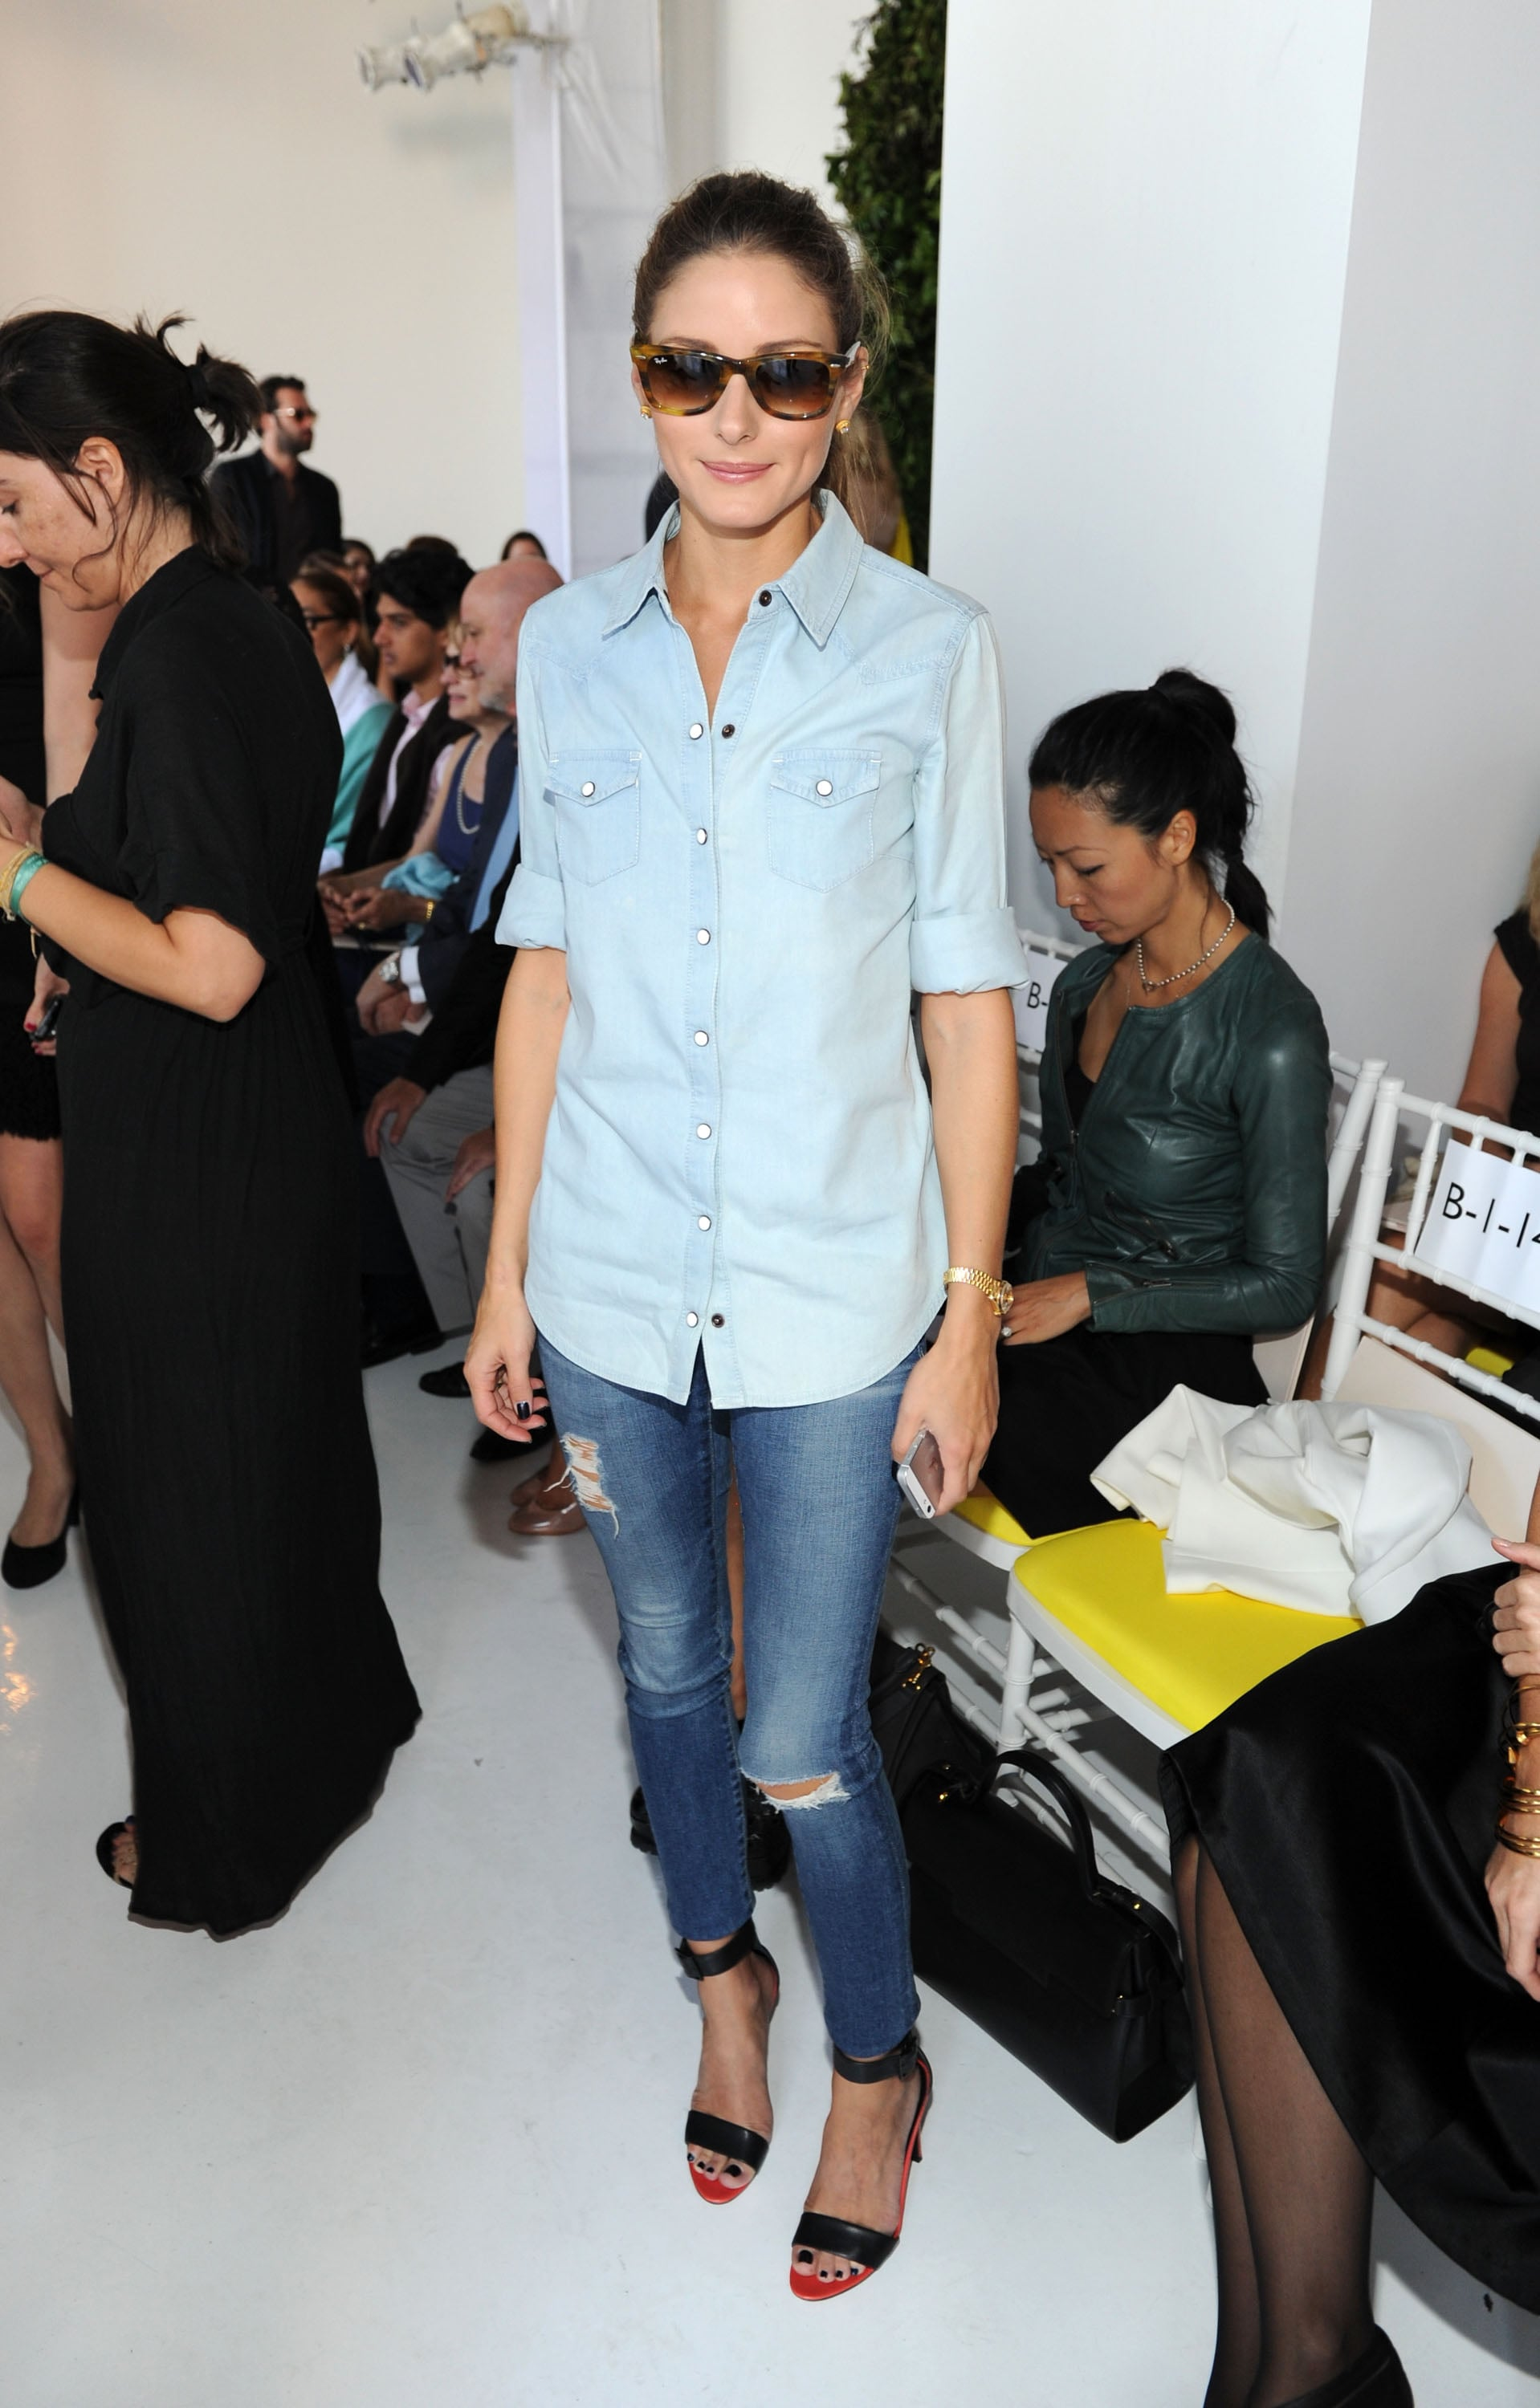 Olivia Palermo worked denim on denim with black ankle-strap sandals and retro sunglasses at Delpozo.